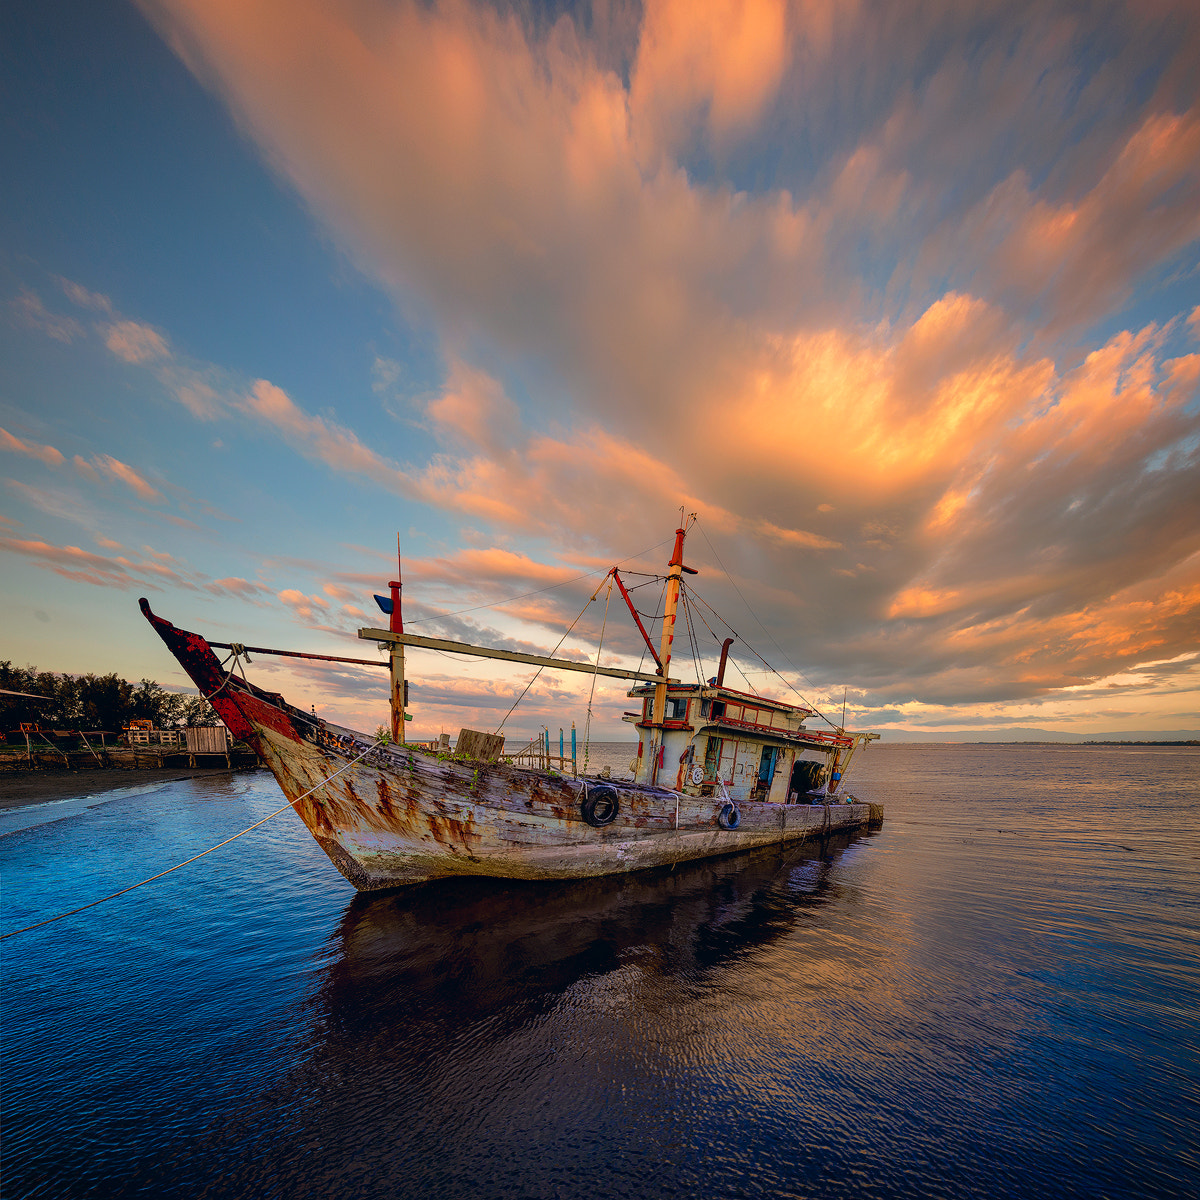 Photograph Stranded Ship. by Esmar Abdul on 500px